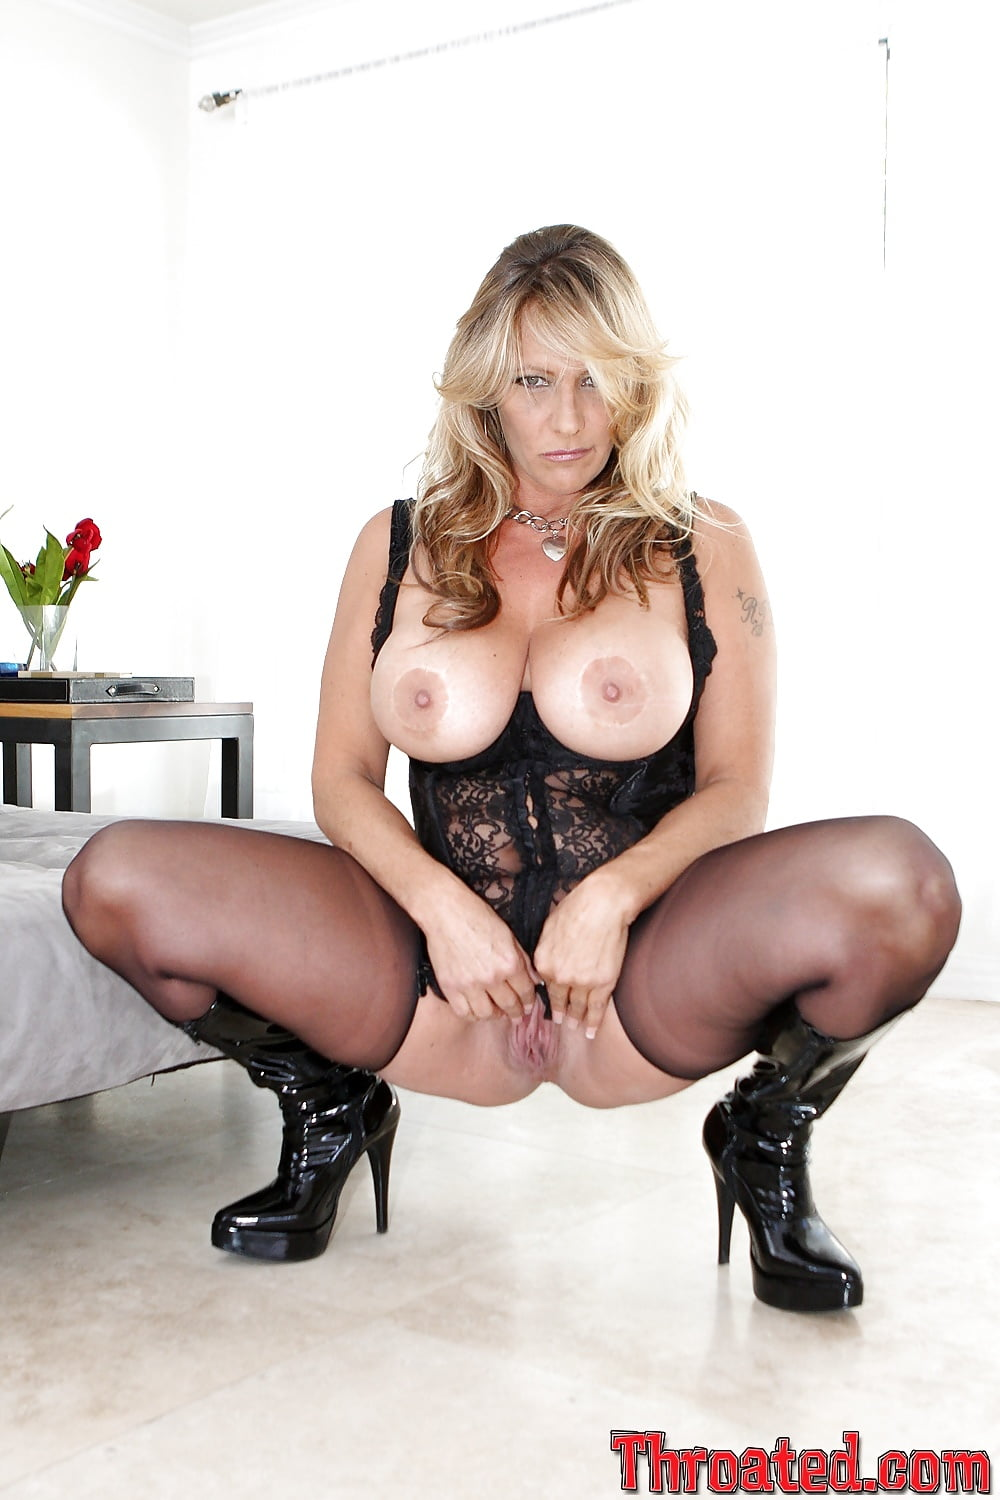 Diamond debi nude — img 8